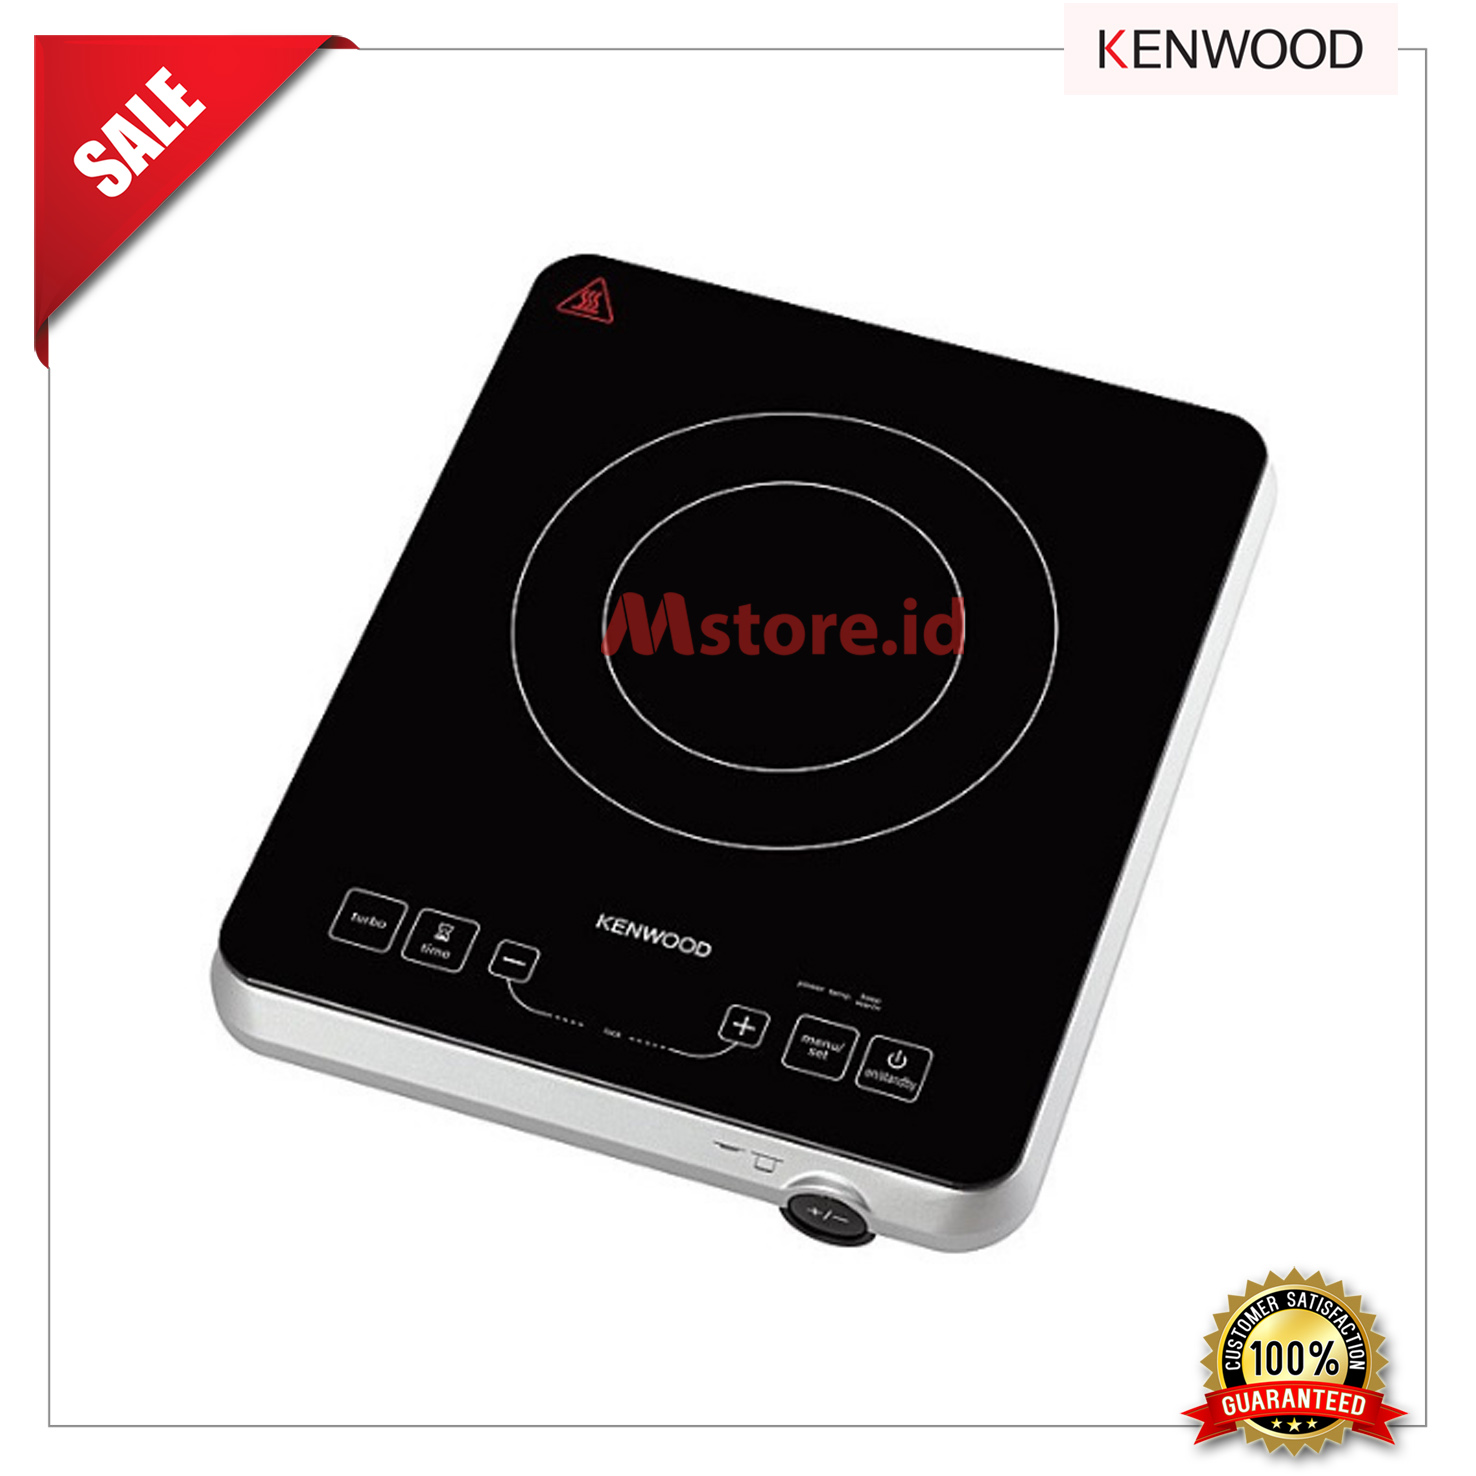 Kenwood Induction Hob IH470_kompor induksi_kenwood_m-store id_multimayaka